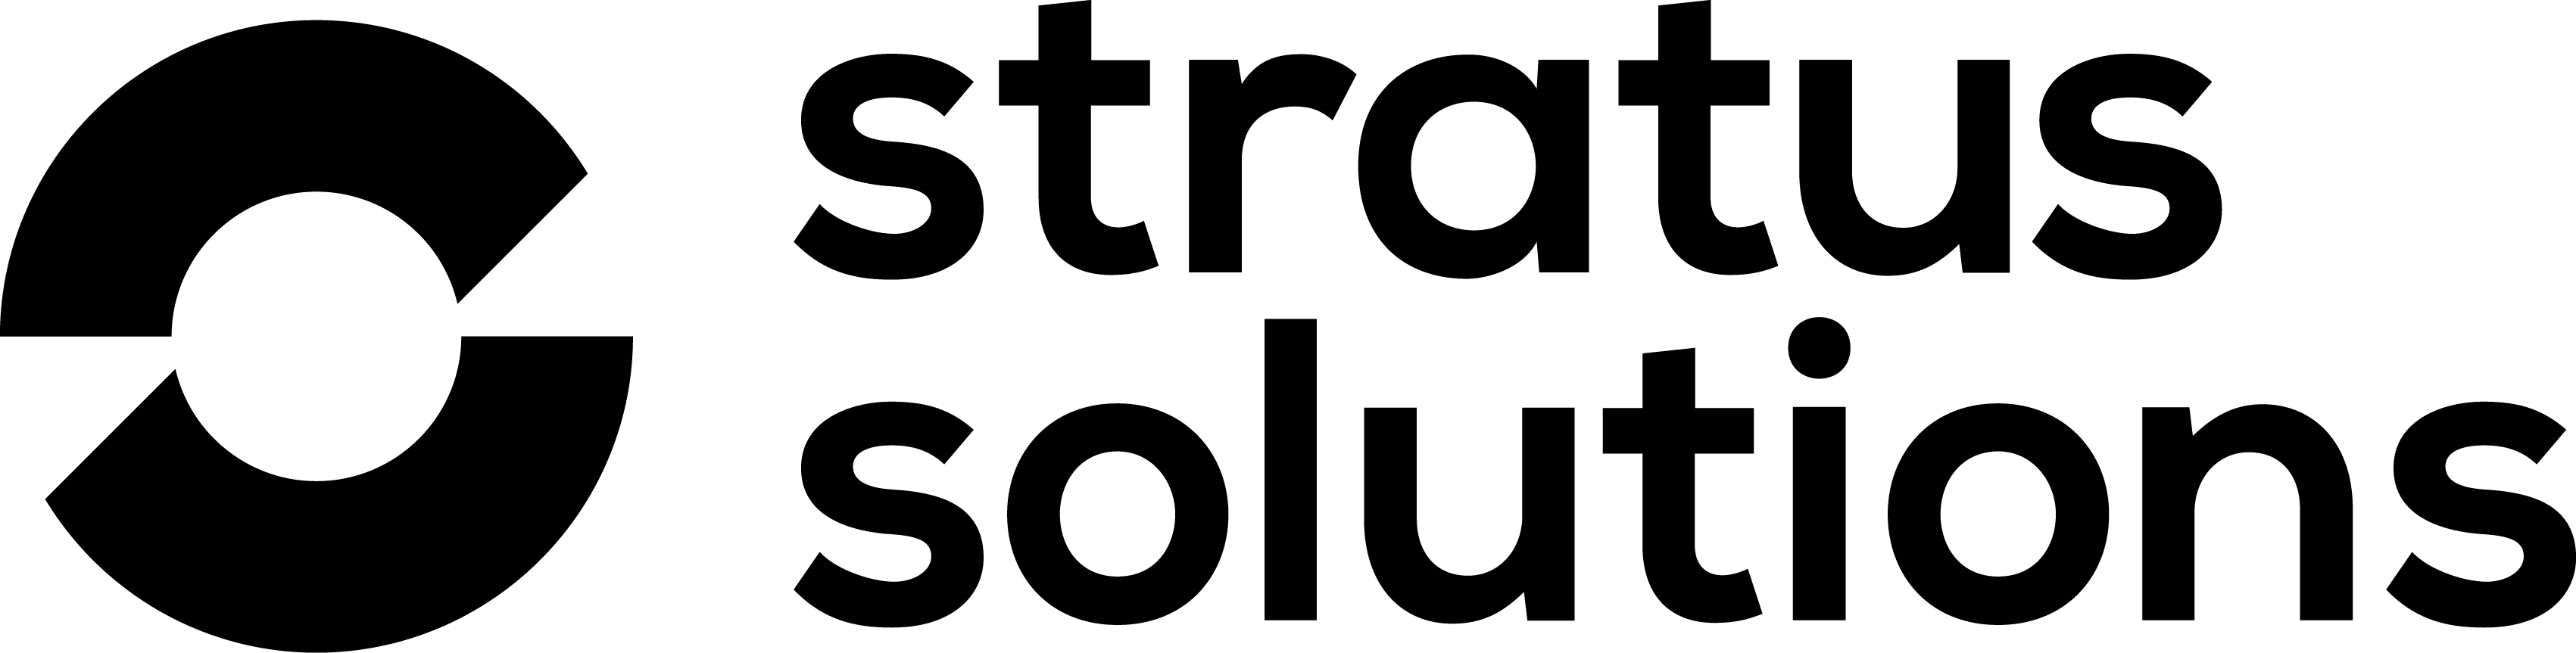 Stratus_Logo-Word_Black